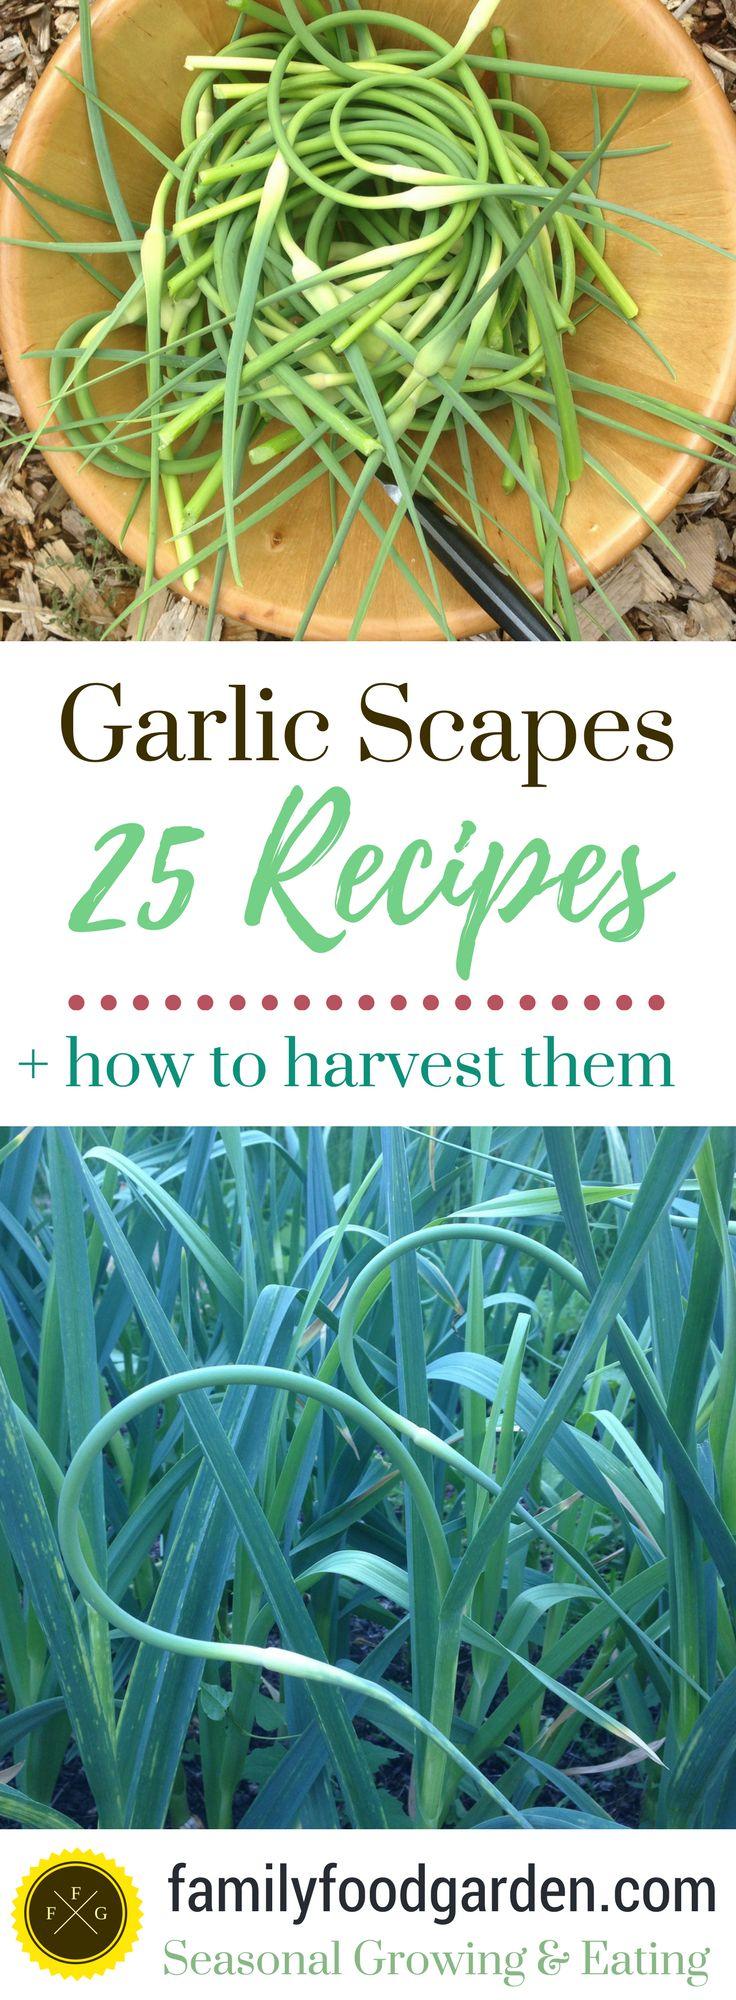 I love garlic scape season! Garlic scapes are the unopened flowers of hardneck garlic varieties and you definitely want to harvest them because they are both delicious and it allows the garlic to focus its growth on the bulb instead of going to seed (this will make for larger bulbs!). Here's a rec